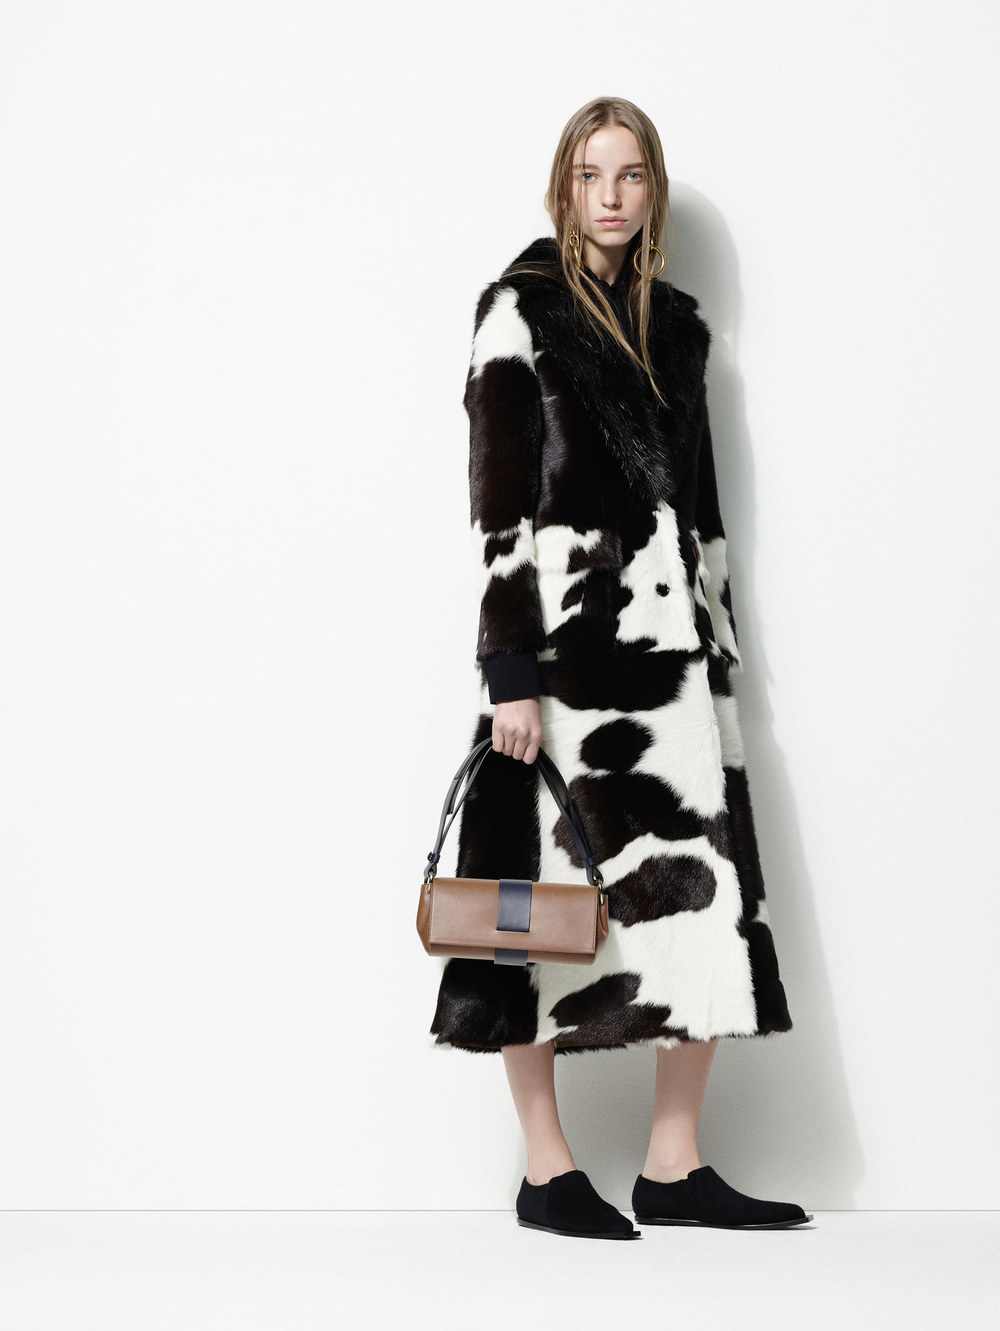 marni-pre-fall-2016-lookbook-04-1.jpg